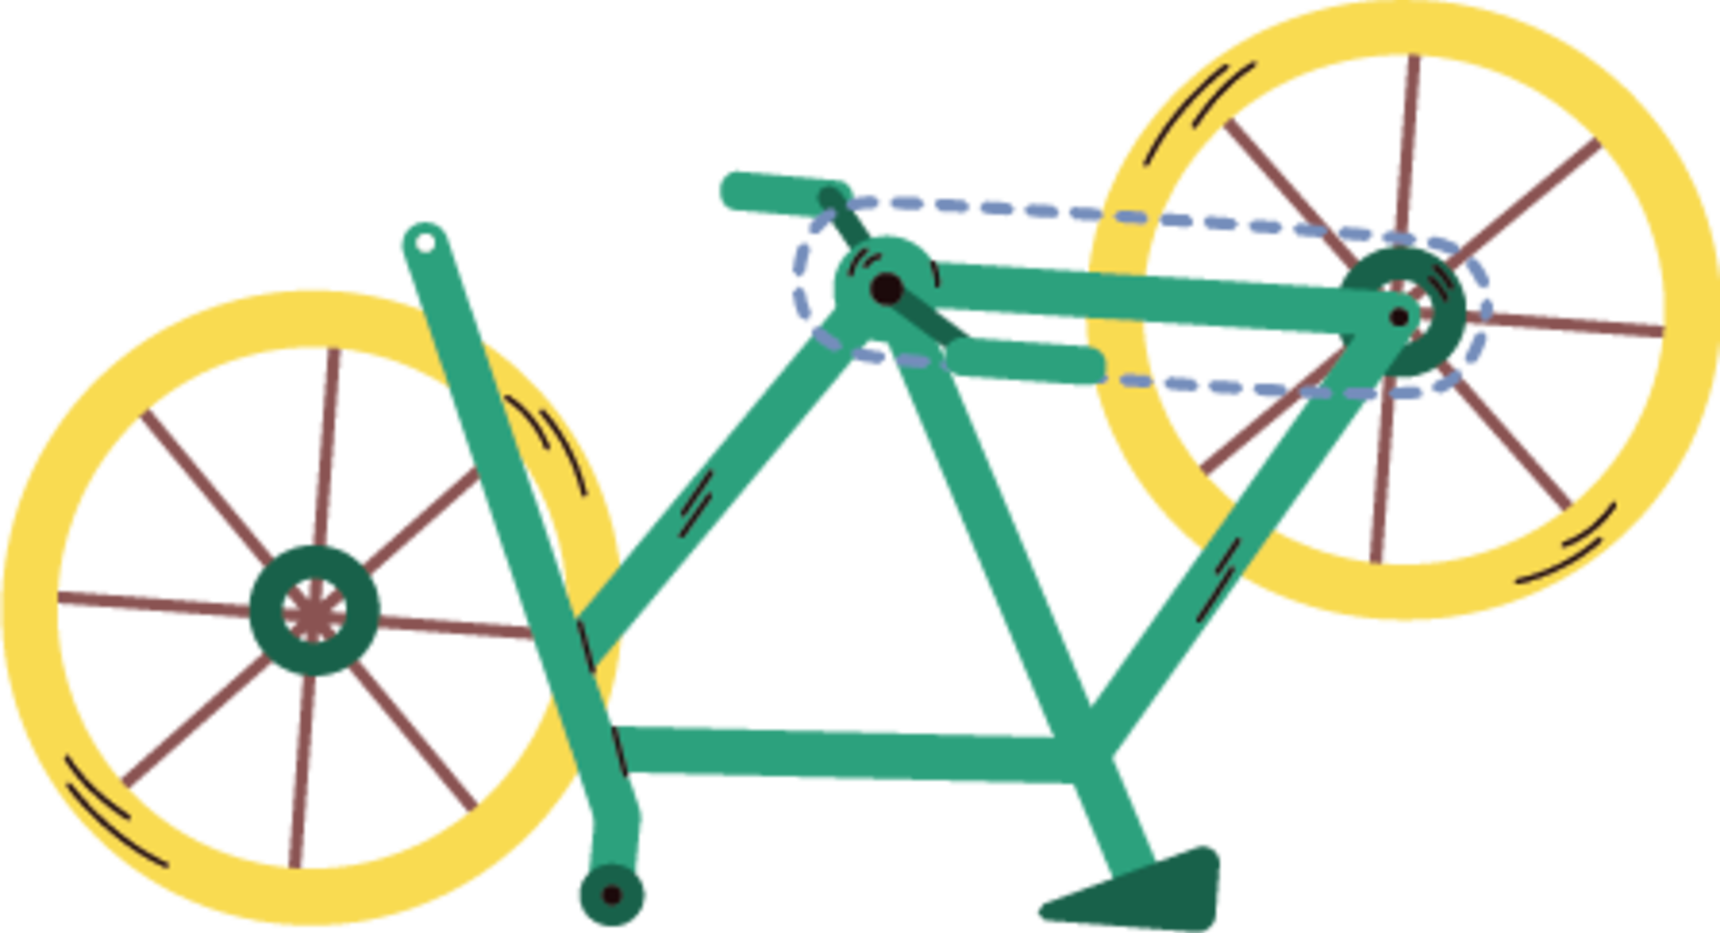 Illustration of a broken bike